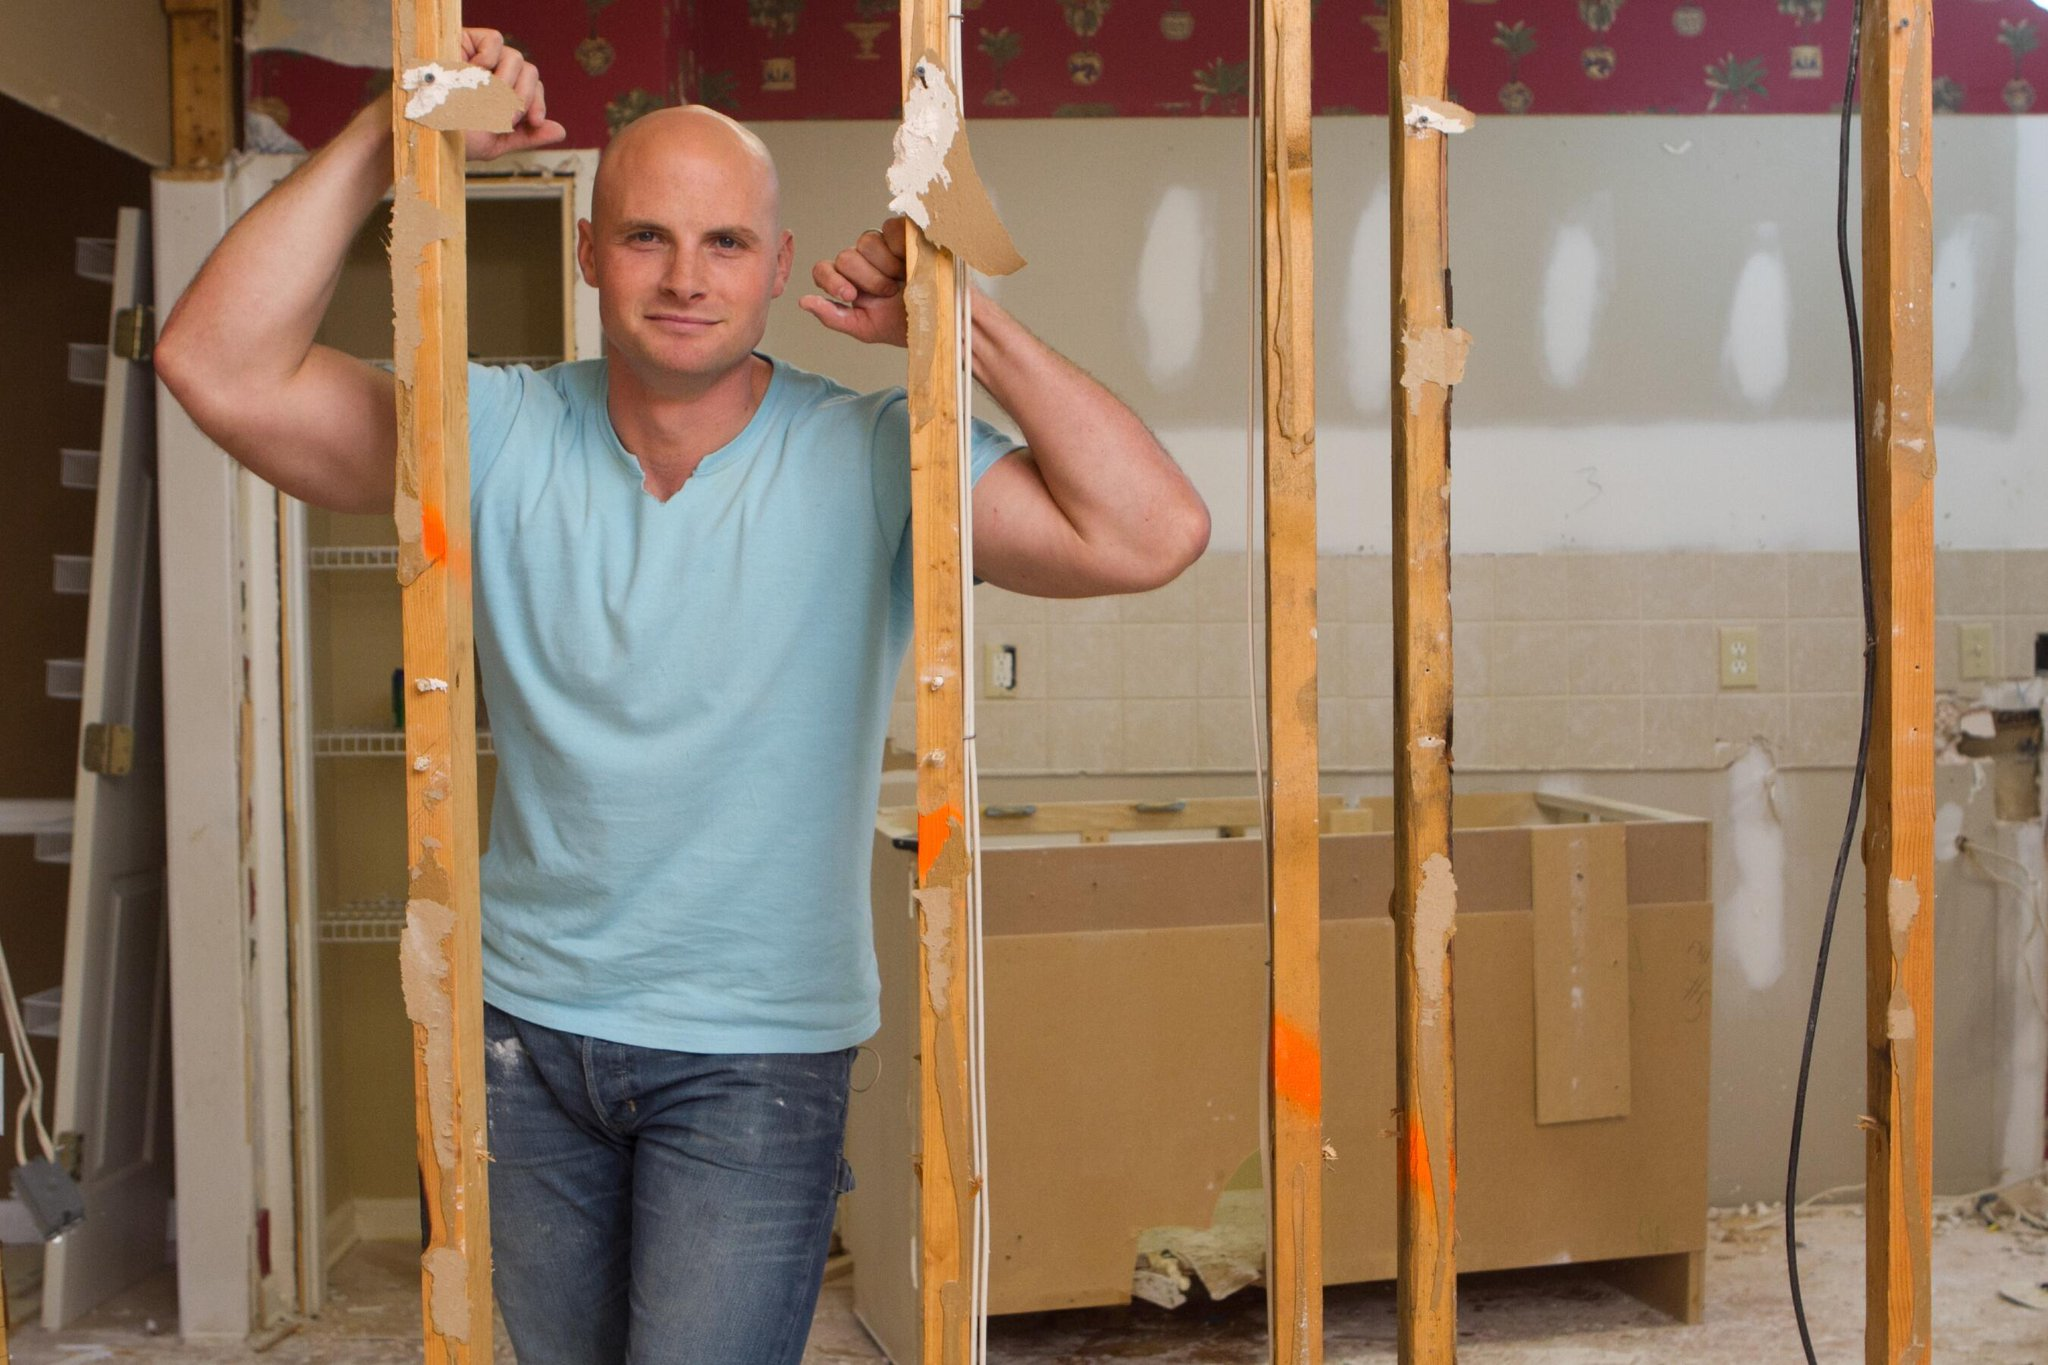 Twitter / hgtv: Two NEW eps of #ElbowRoom start ...